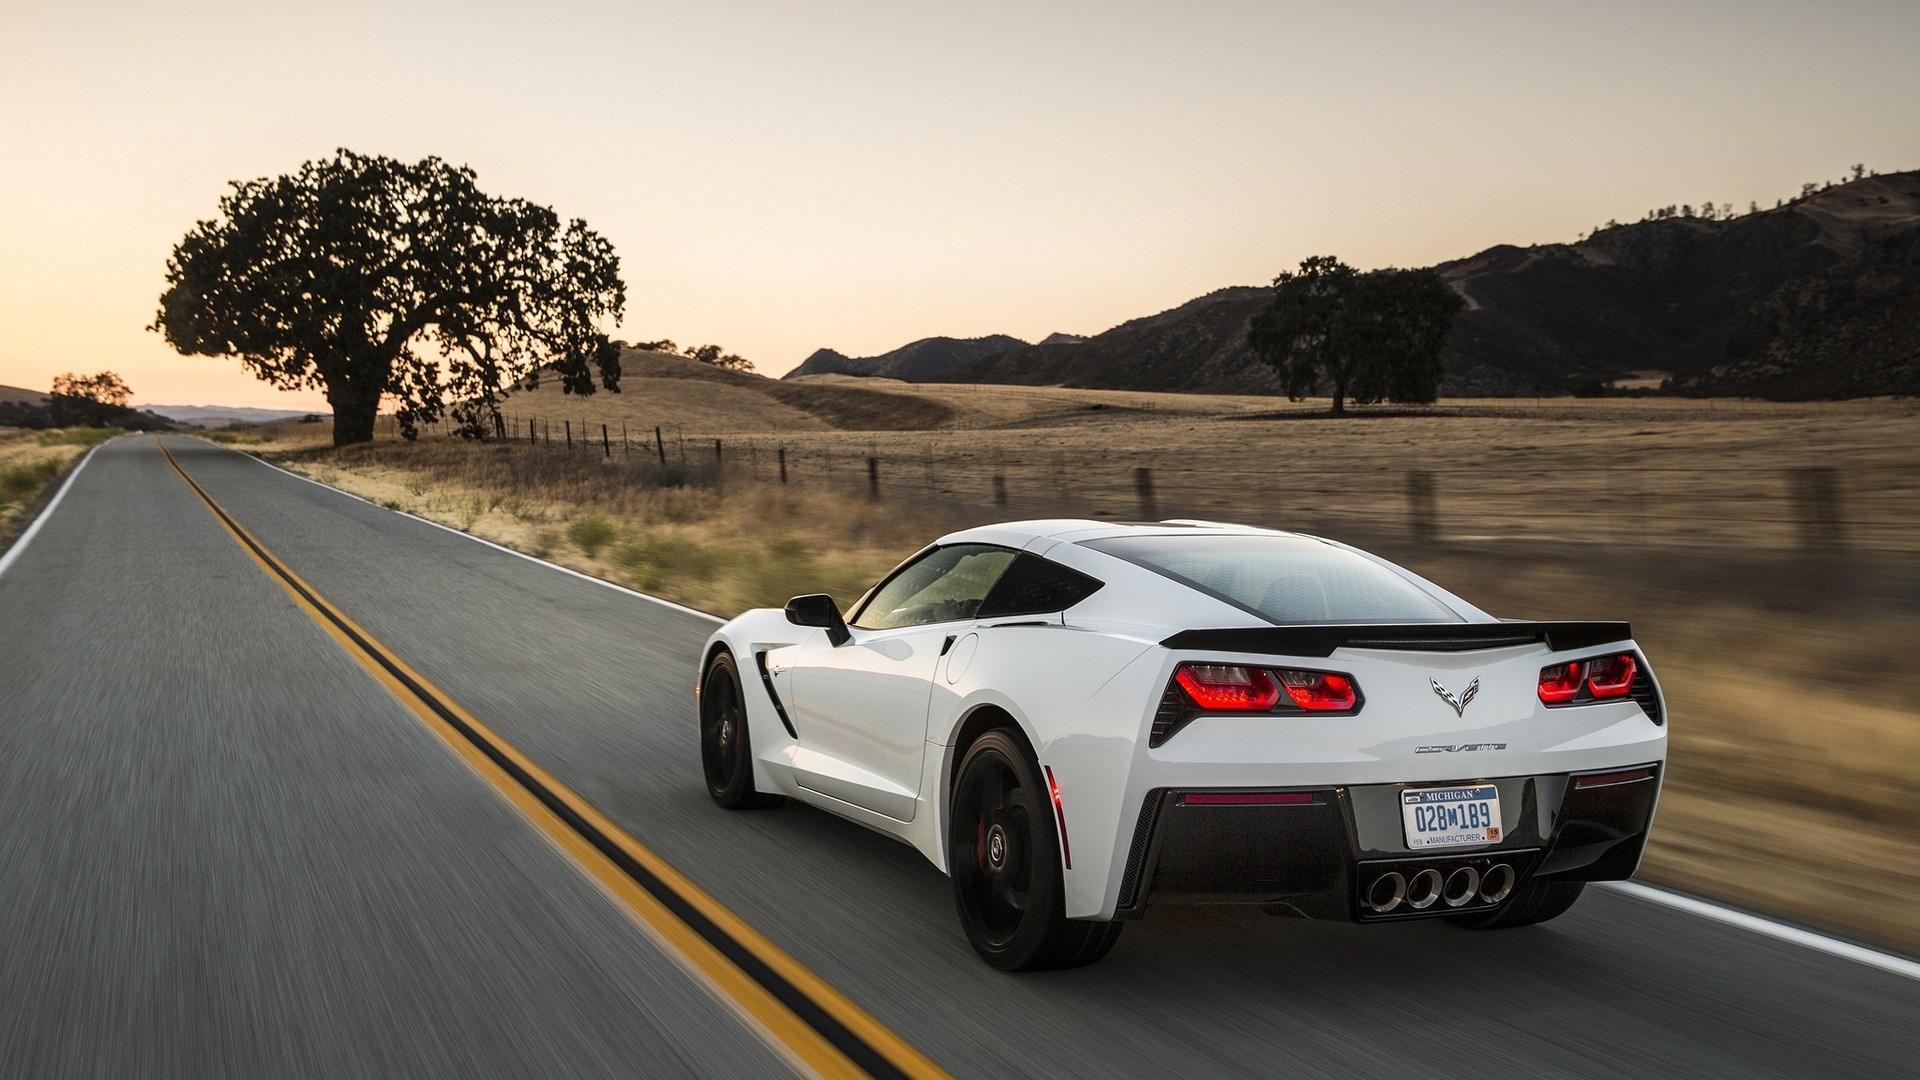 1920x1080 Chevrolet Corvette C7 Stingray 2014 | 1920 x 1080 ...